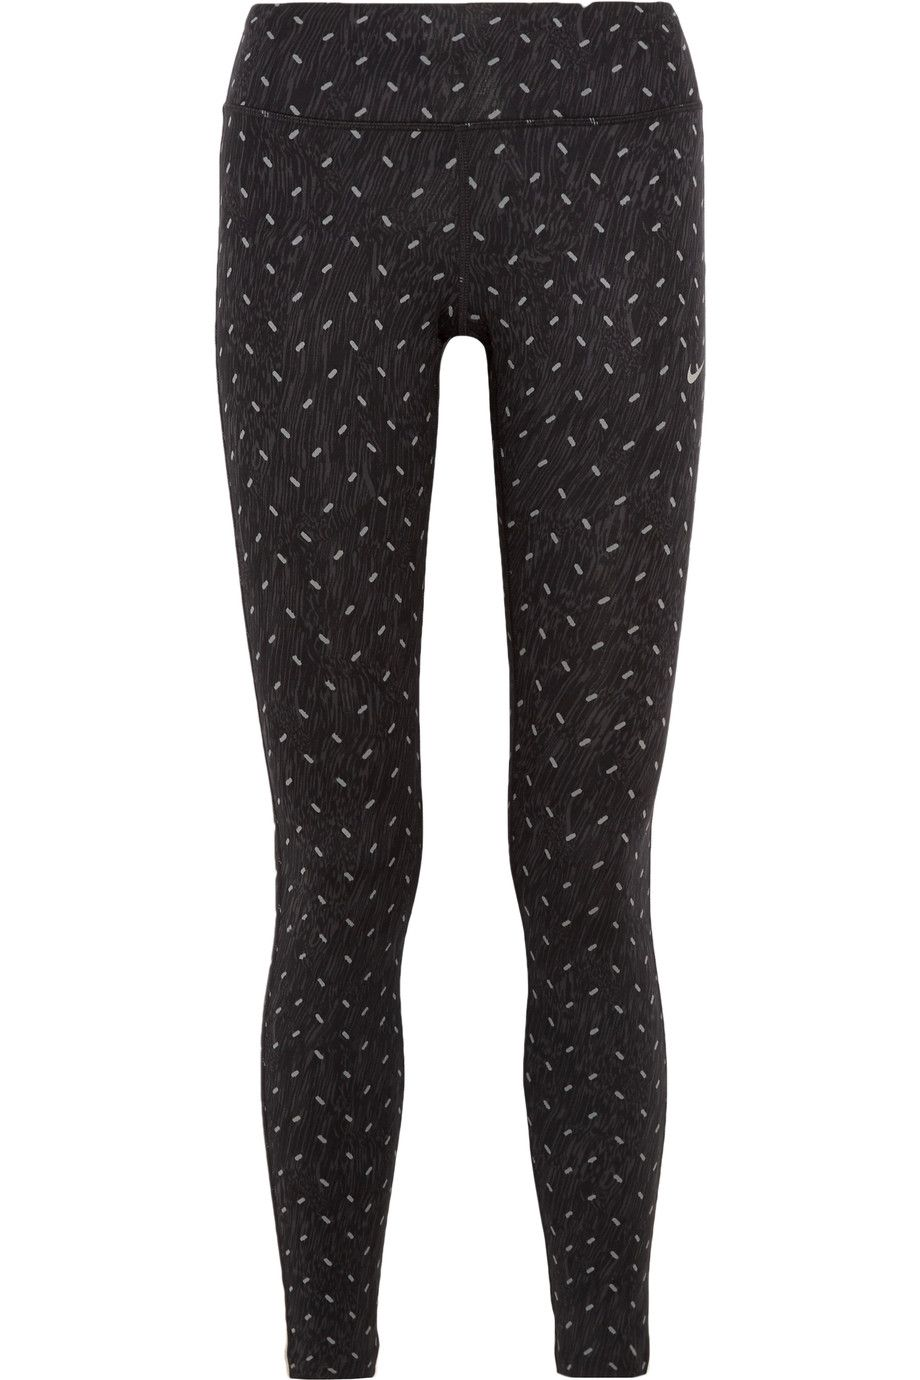 NIKE Power Epic Run printed stretch-jersey leggings Black and light-gray  stretch-